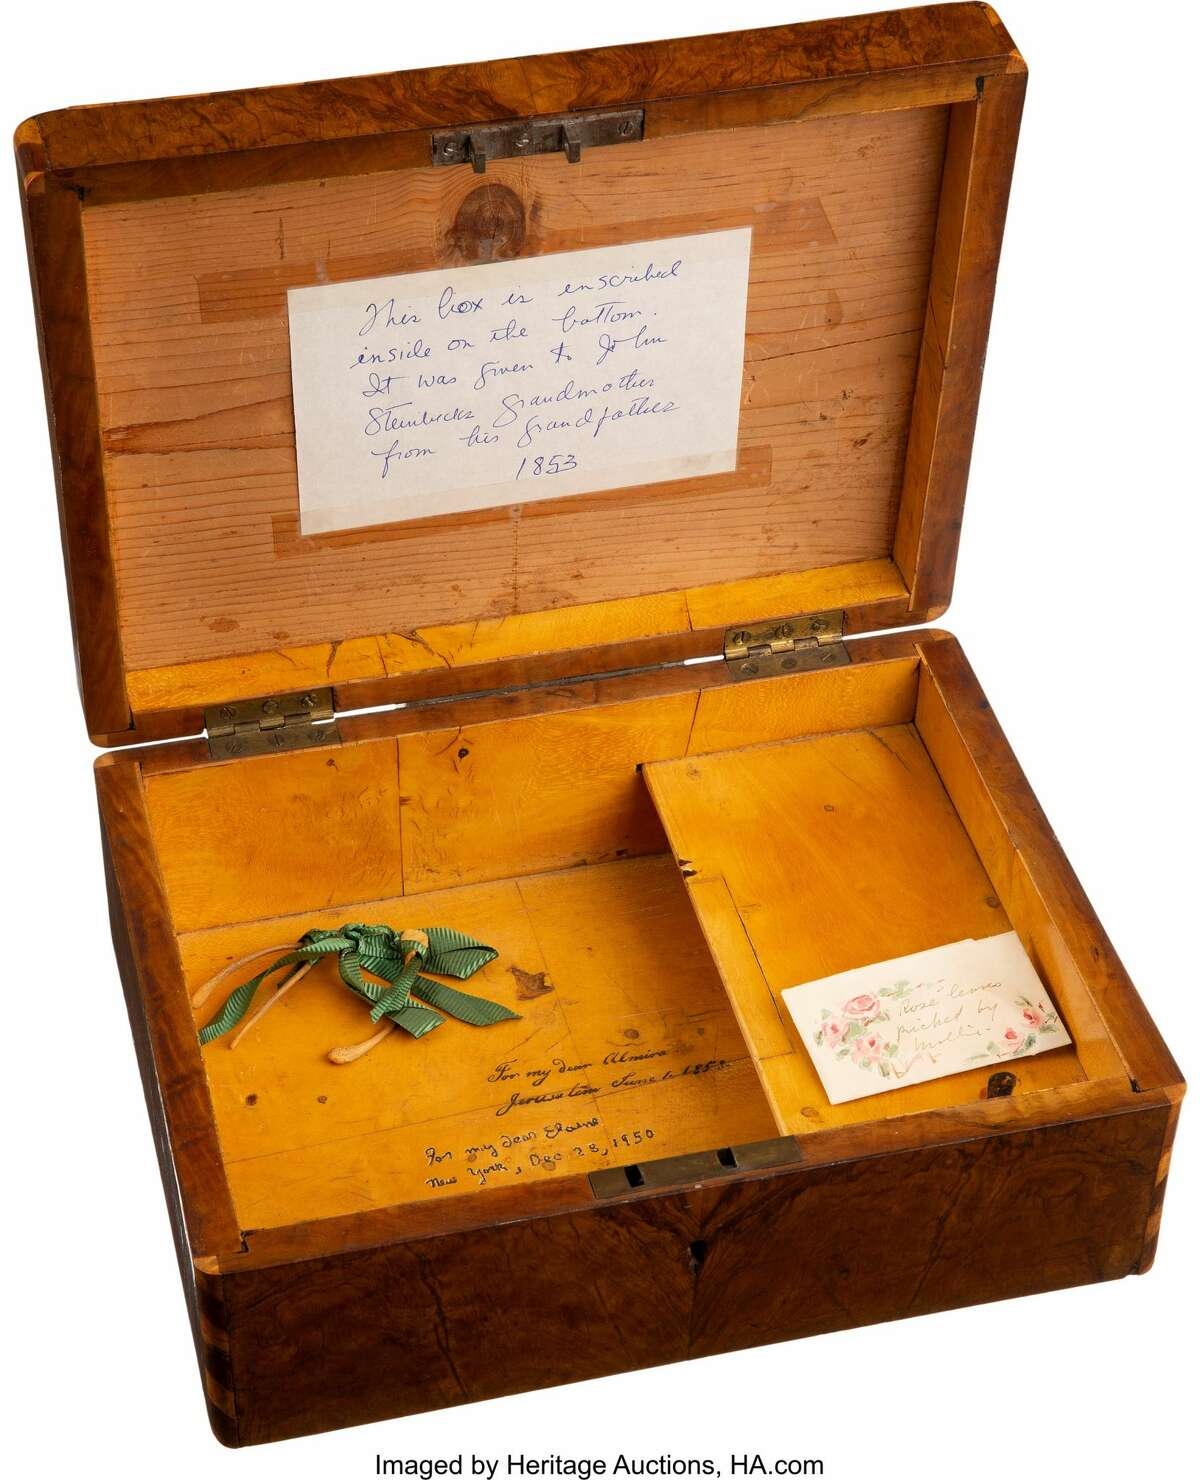 A Victorian box given by John Steinbeck's grandfather to his wife, and later from Steinbeck to his third wife Elaine Scott.